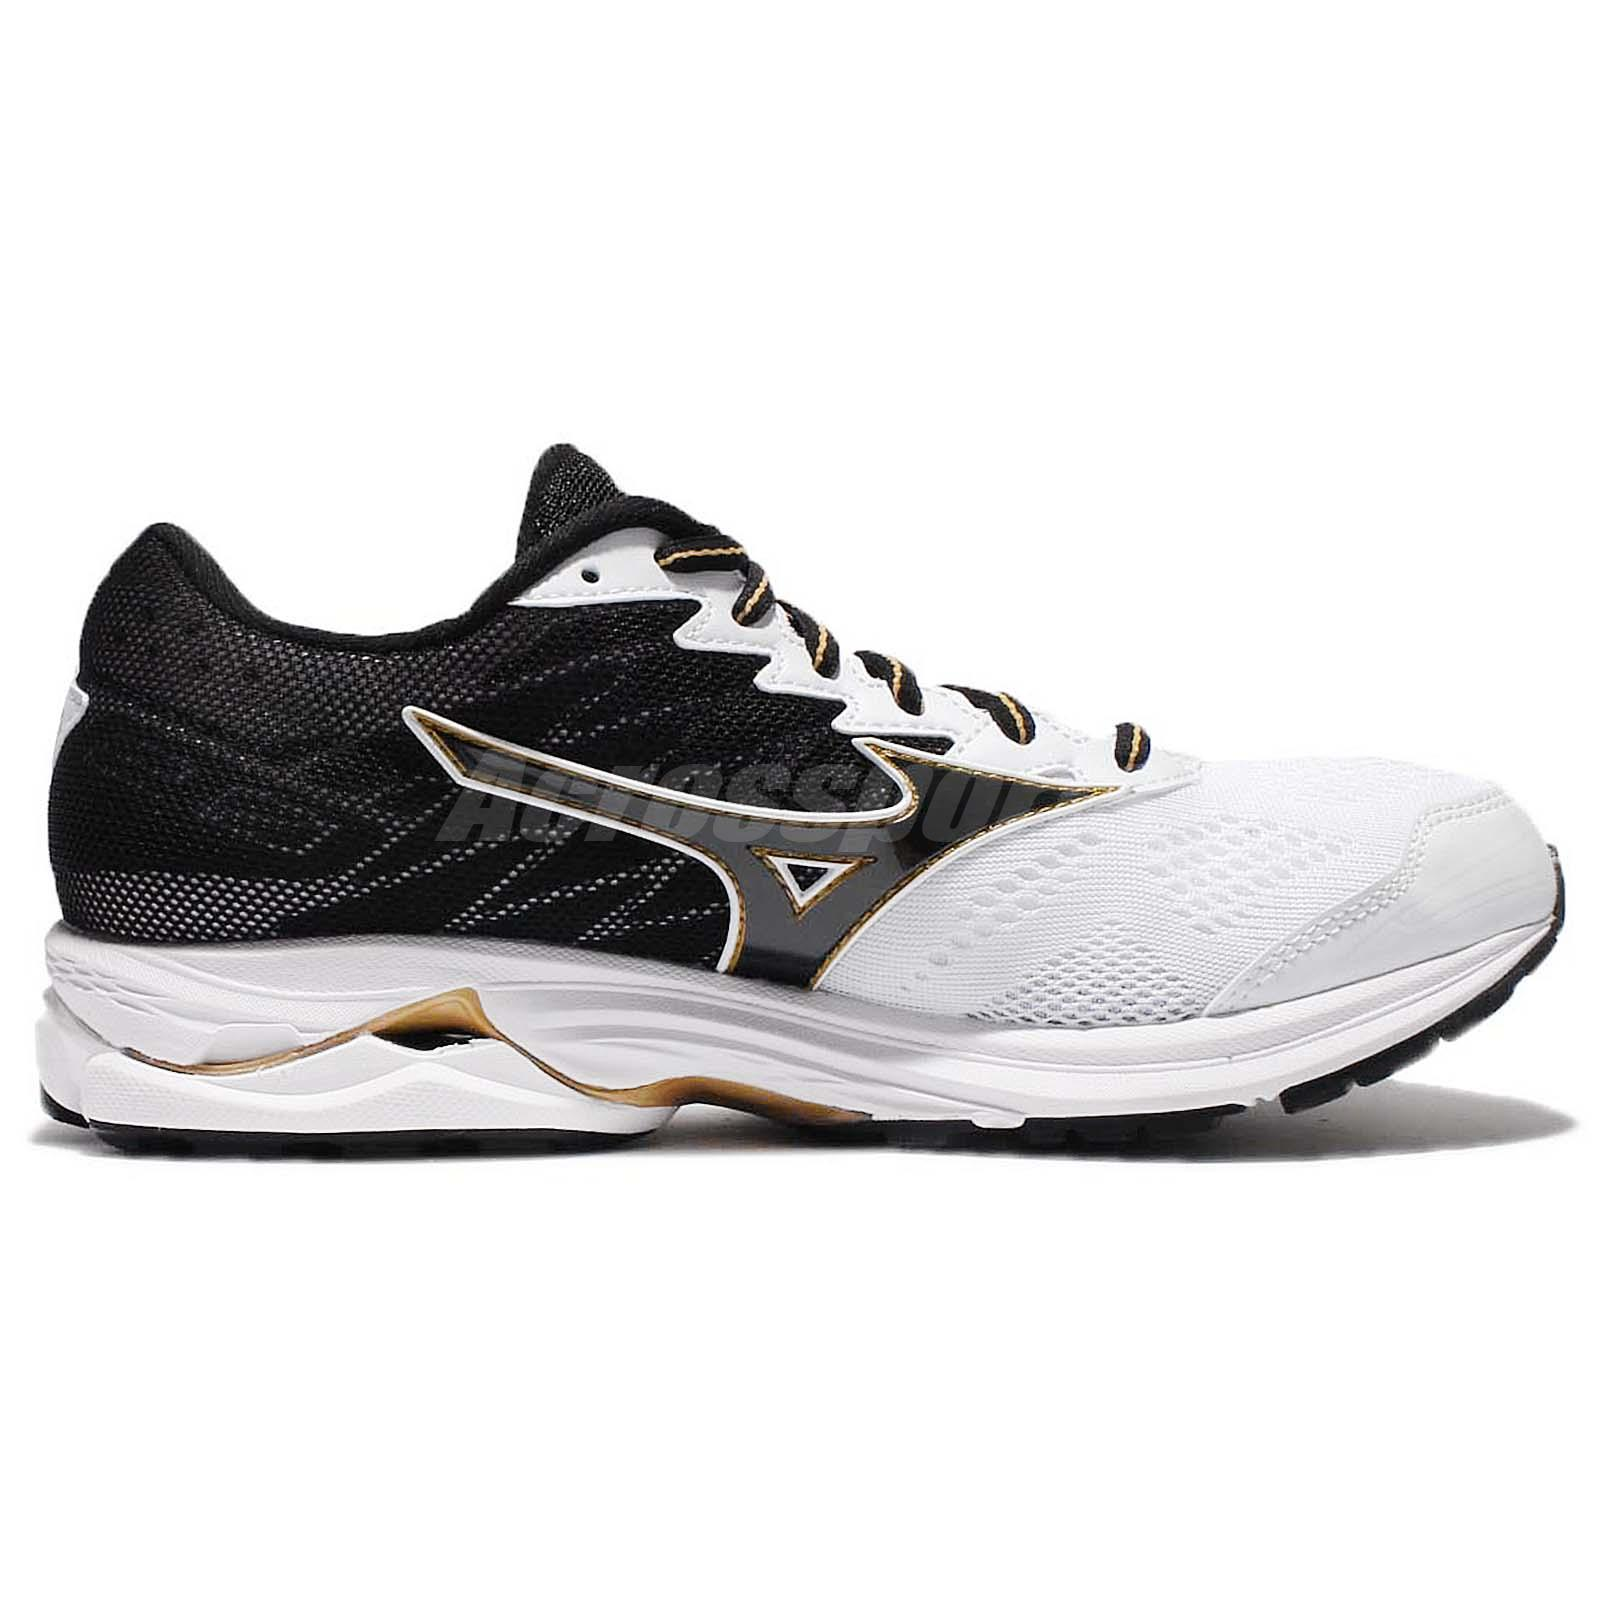 mizuno mens running shoes size 9 youth gold female weight program